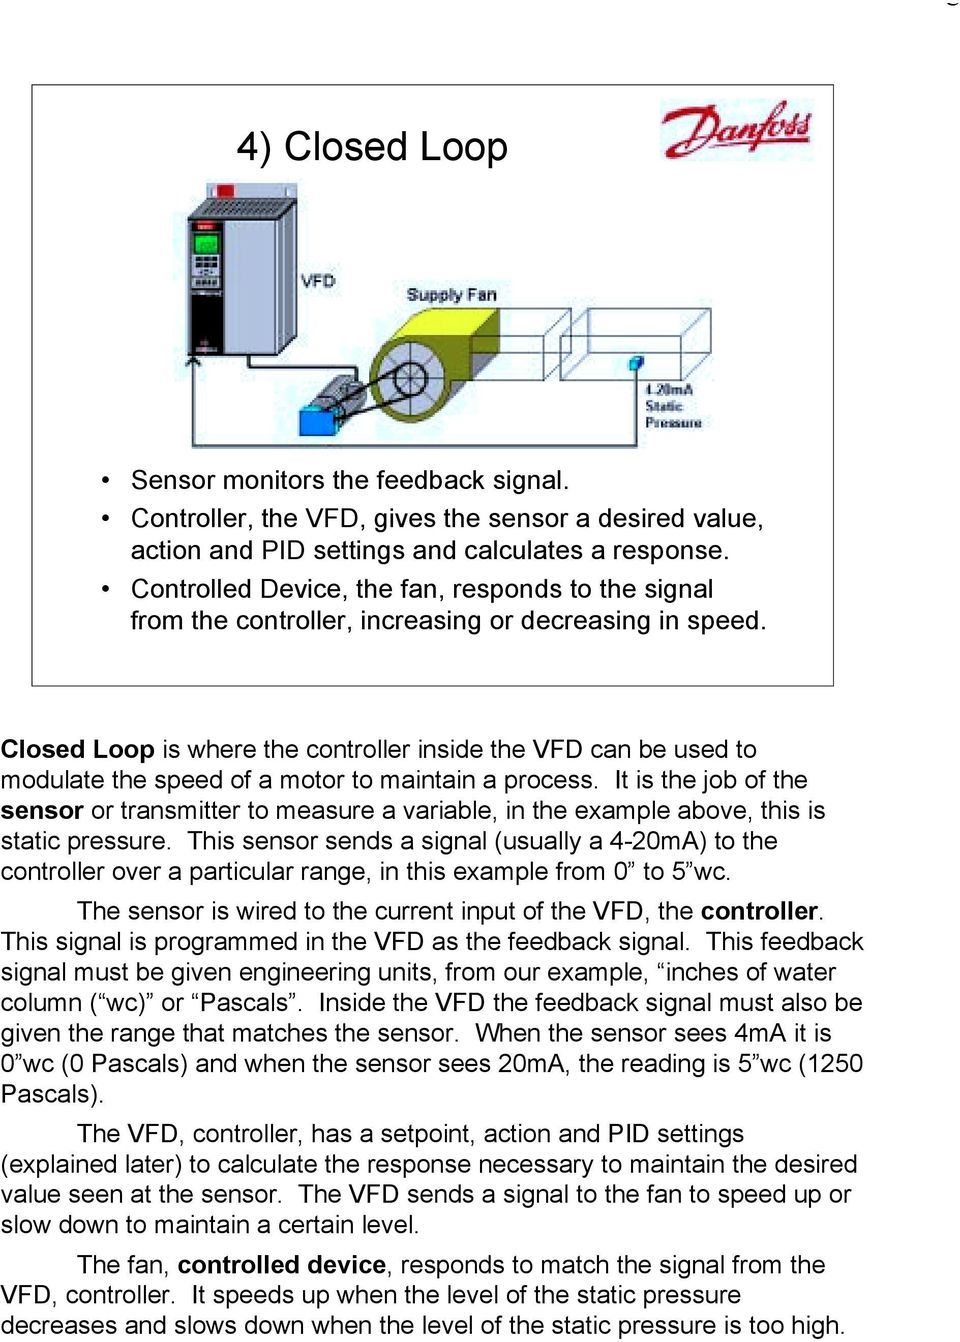 Closed Loop is where the controller inside the VFD can be used to modulate the speed of a motor to maintain a process.